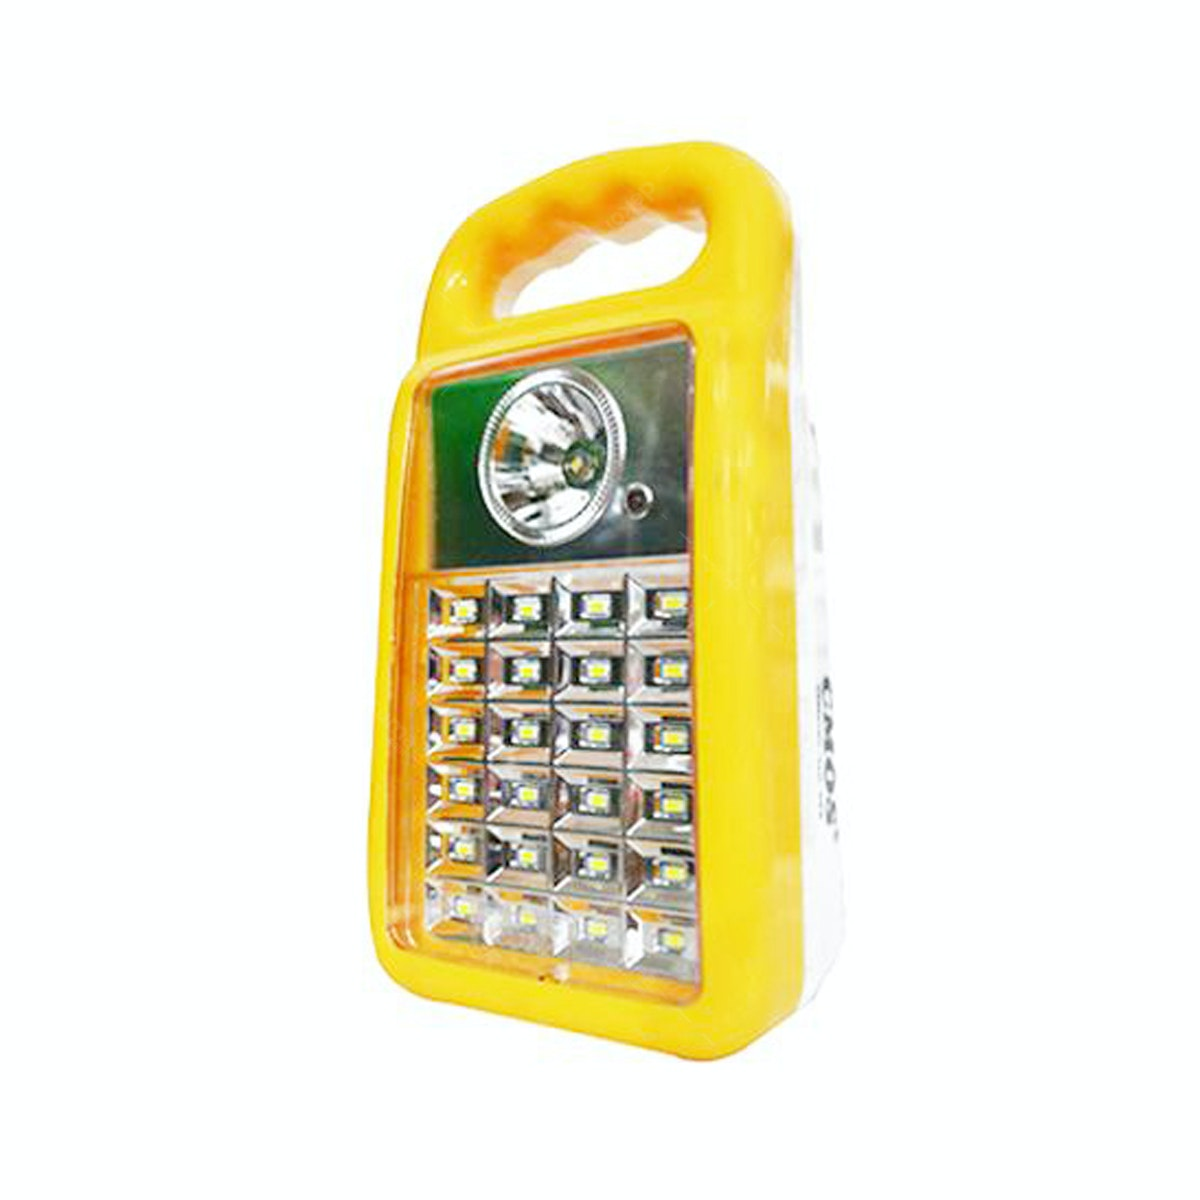 CMOS Emergency Lamp Hk-25S